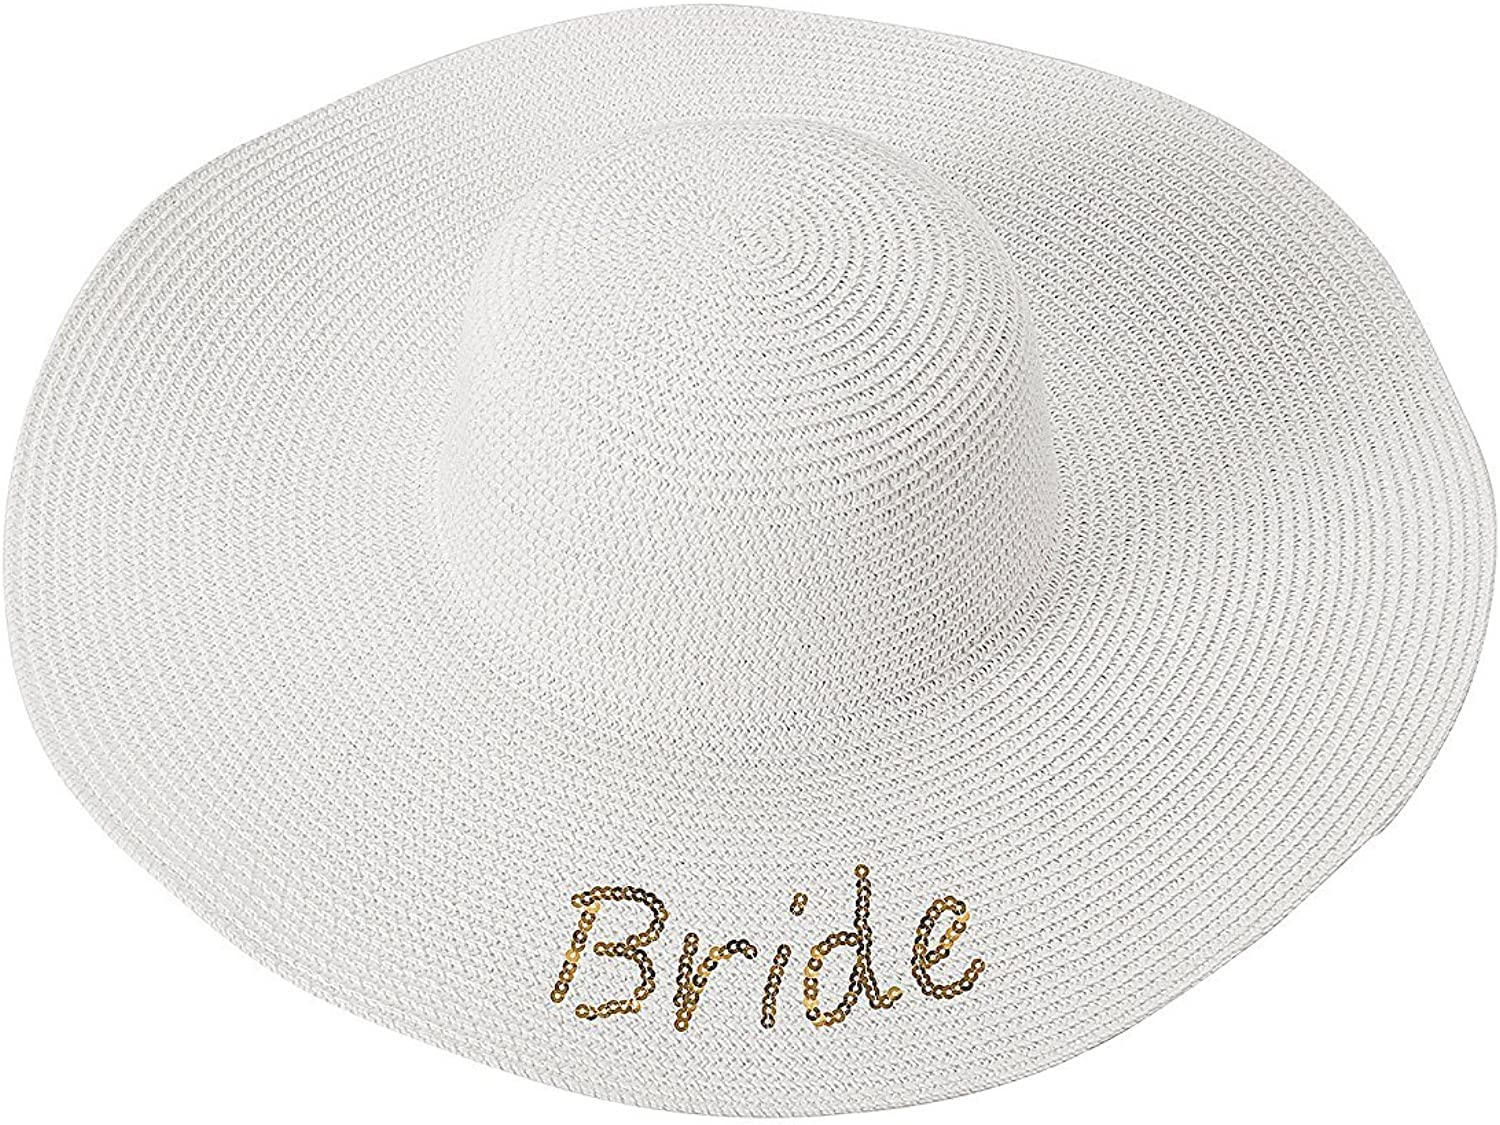 Cathy's Concepts Sequin Bride Sun Hat